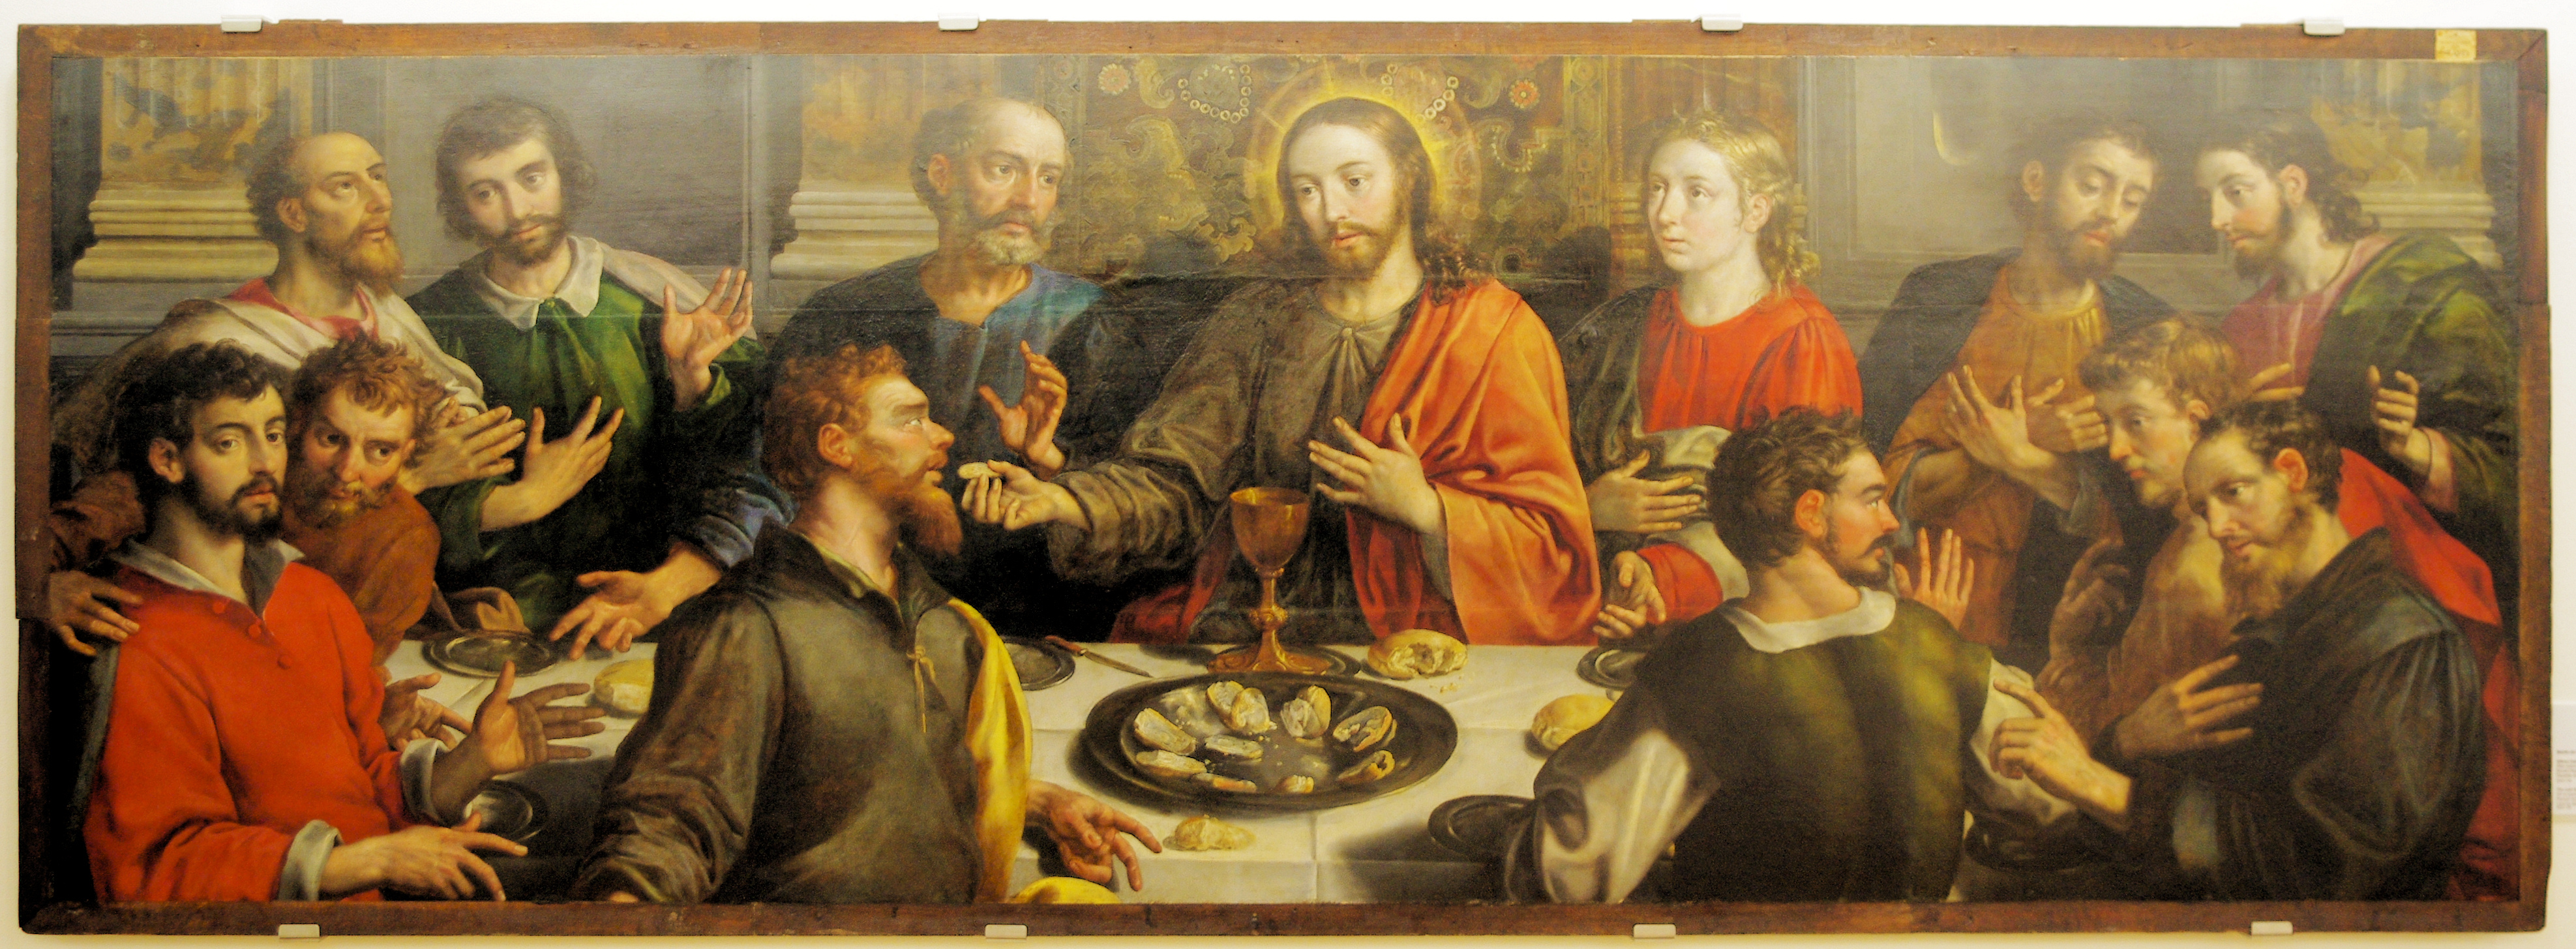 descriptive essay on the last supper Last supper (1495-98) by leonardo da vinci: analysis of high renaissance fresco mural painting.